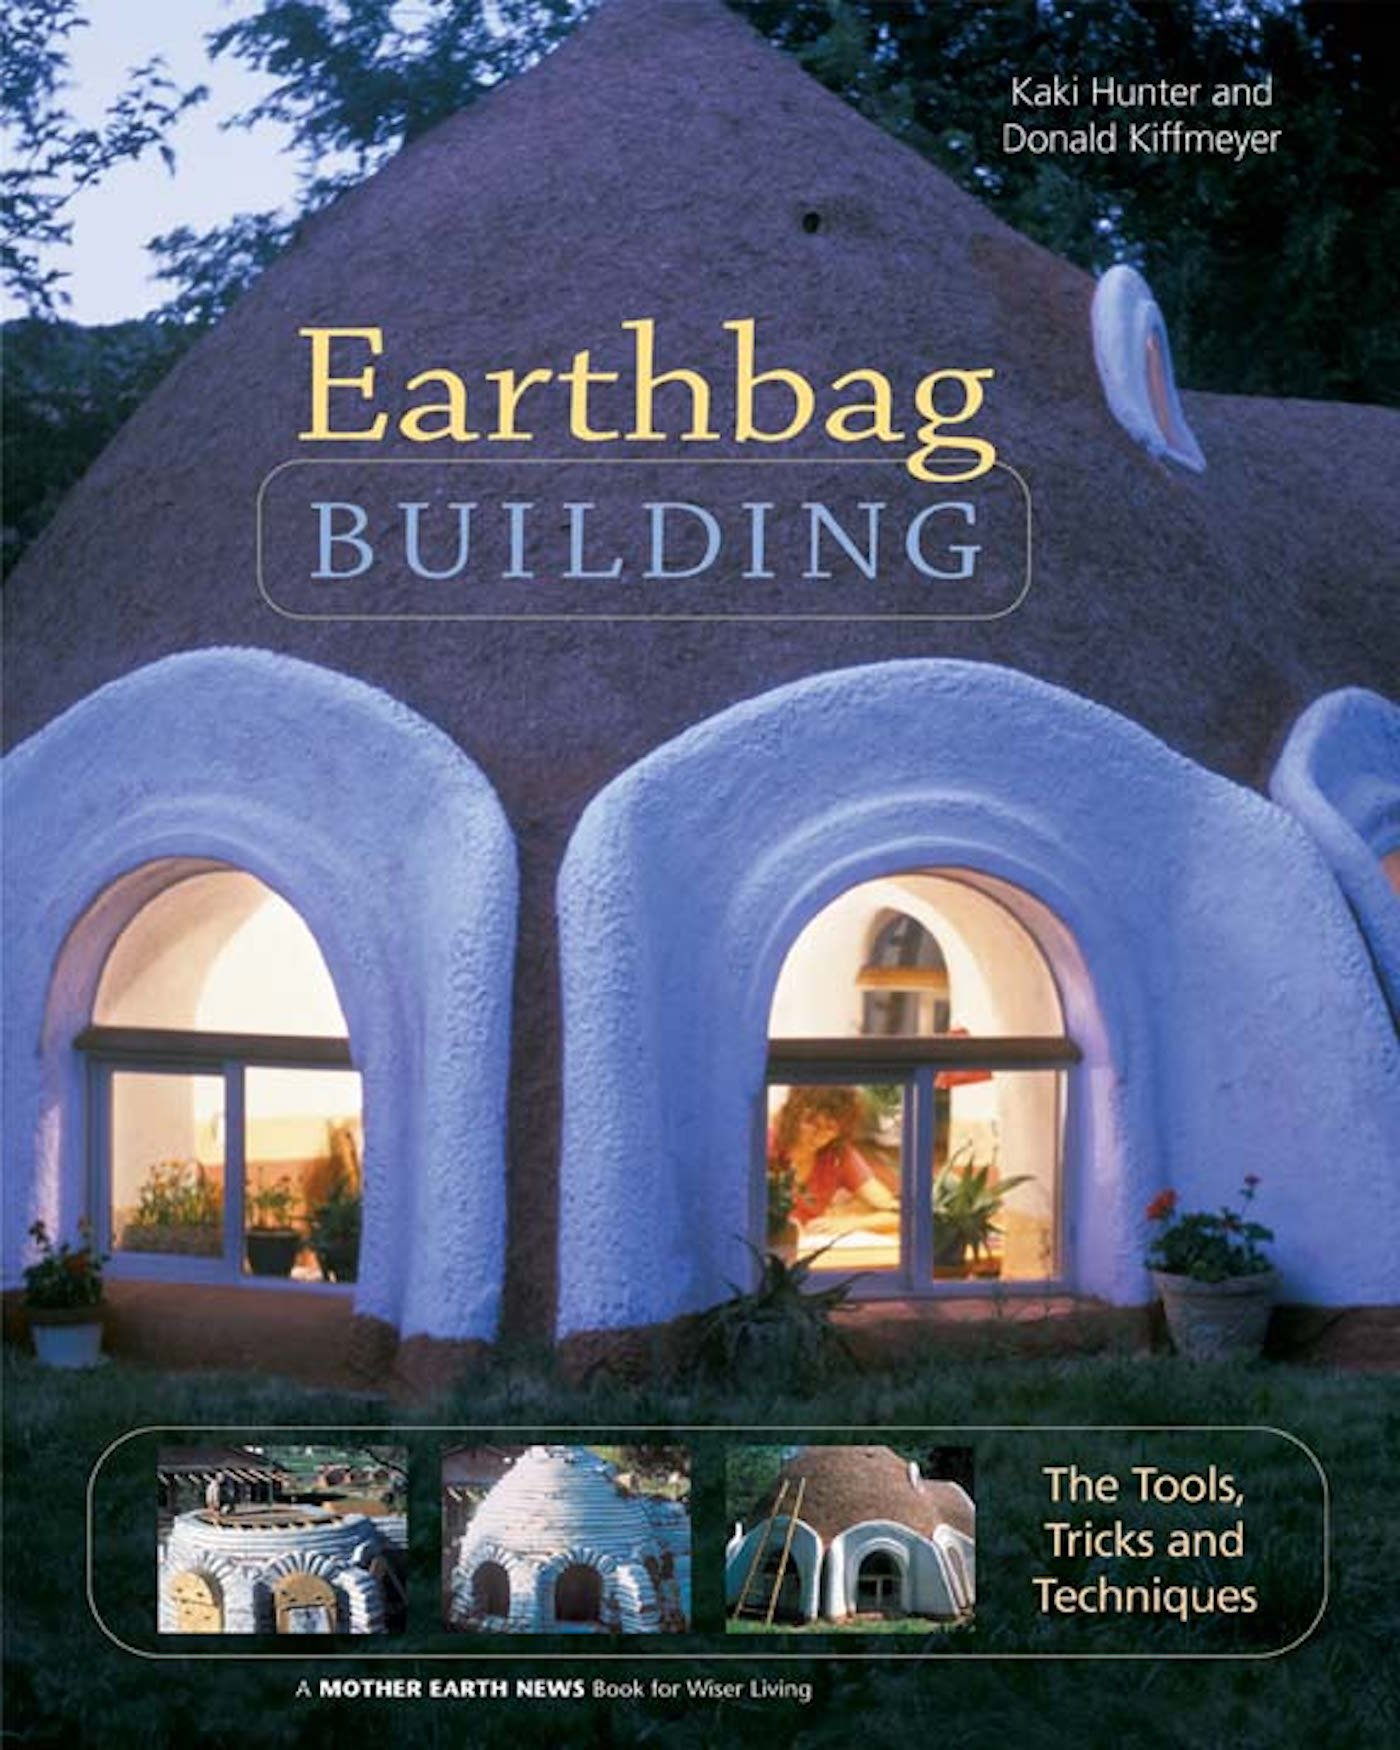 Earthbag Building Tricks Techniques Natural product image